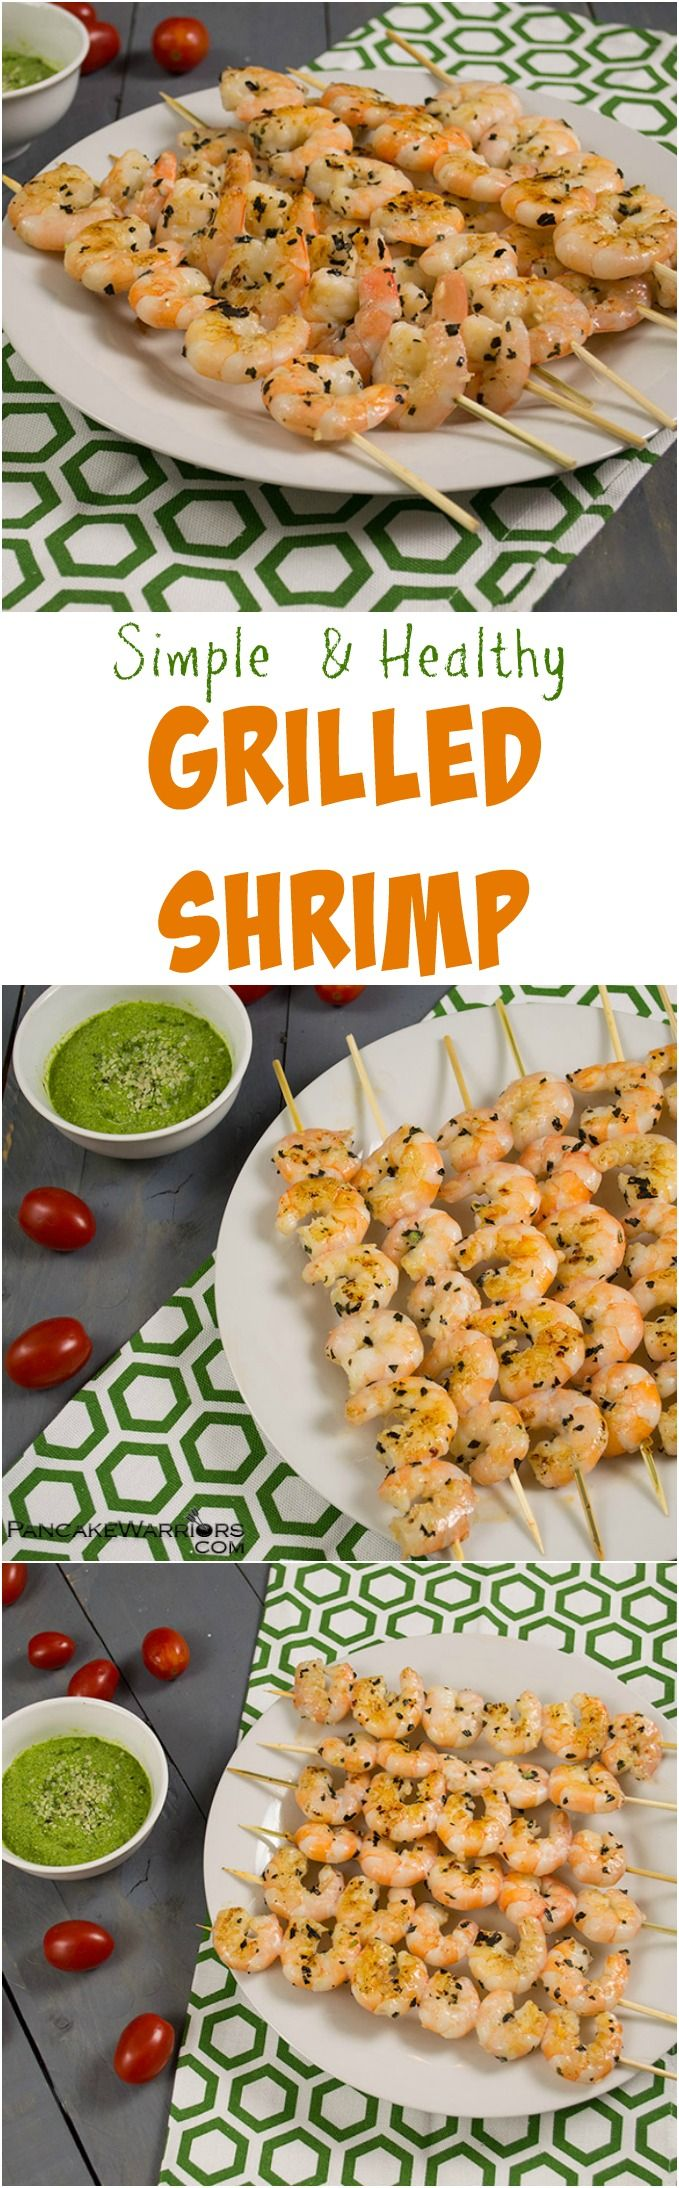 Easy grilled shrimp recipe. This is the perfect, healthy option for cookouts! Enjoy with healthy basil pesto for dipping! This is a family favorite, so be sure to make more than you think you need.